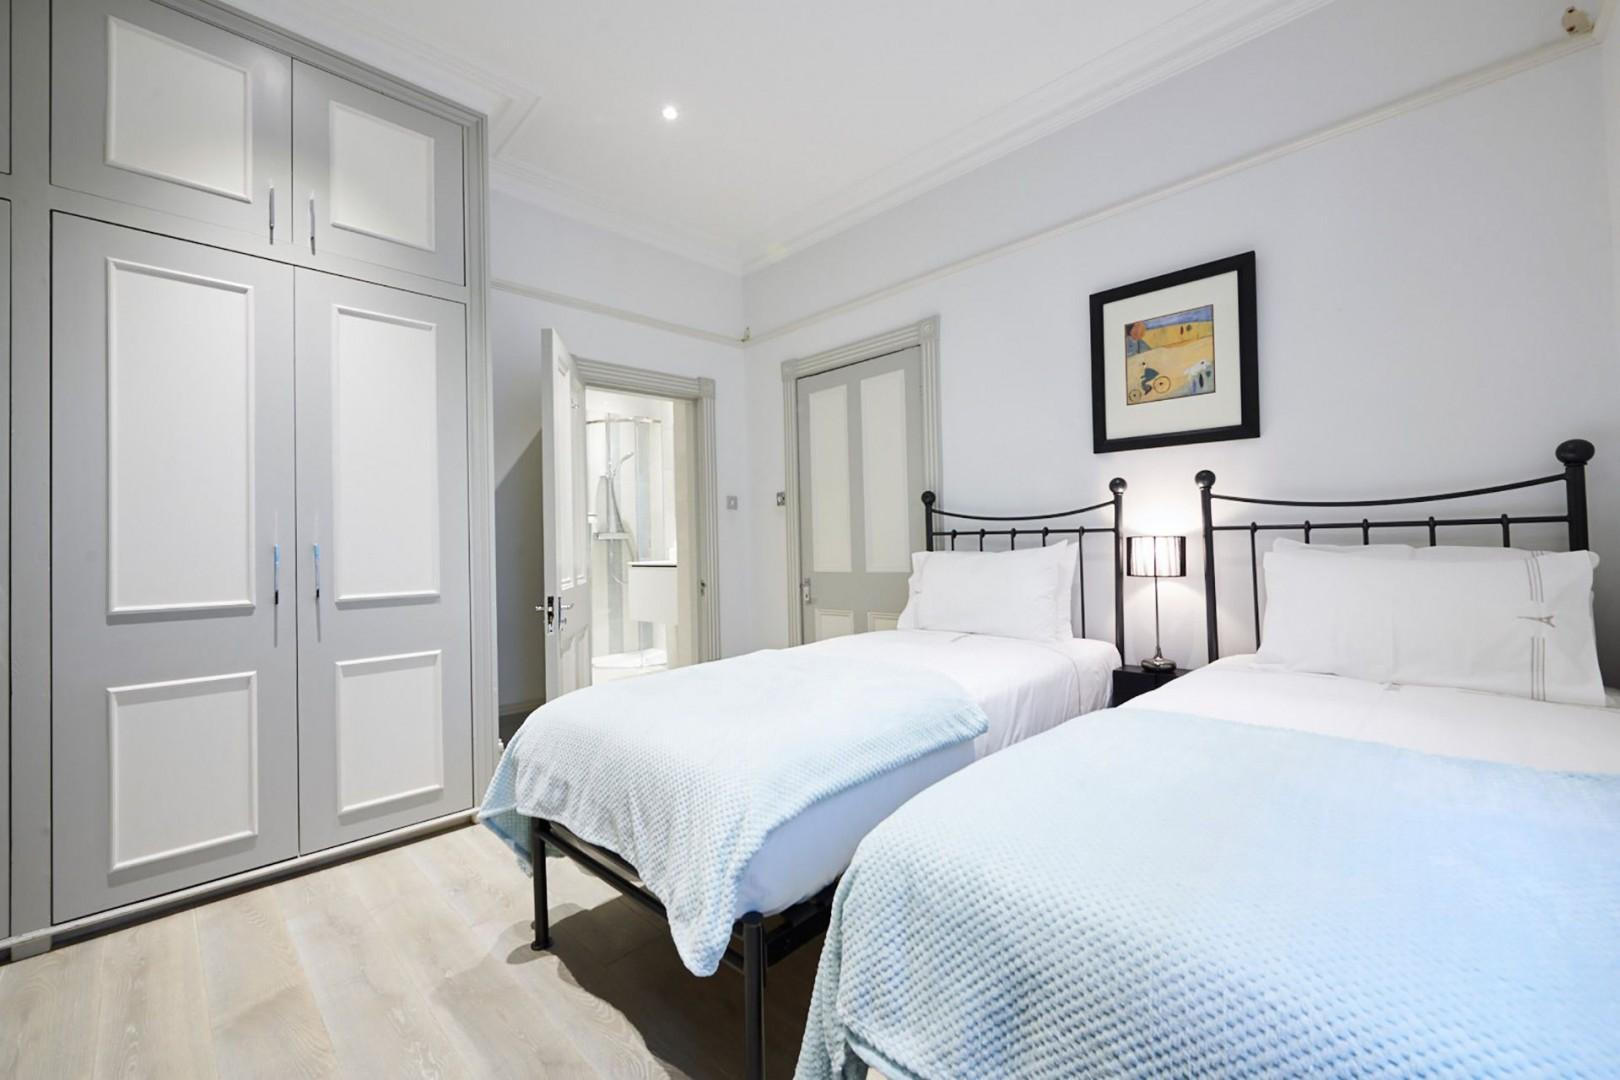 Beautiful bedroom 2 features two comfortable beds